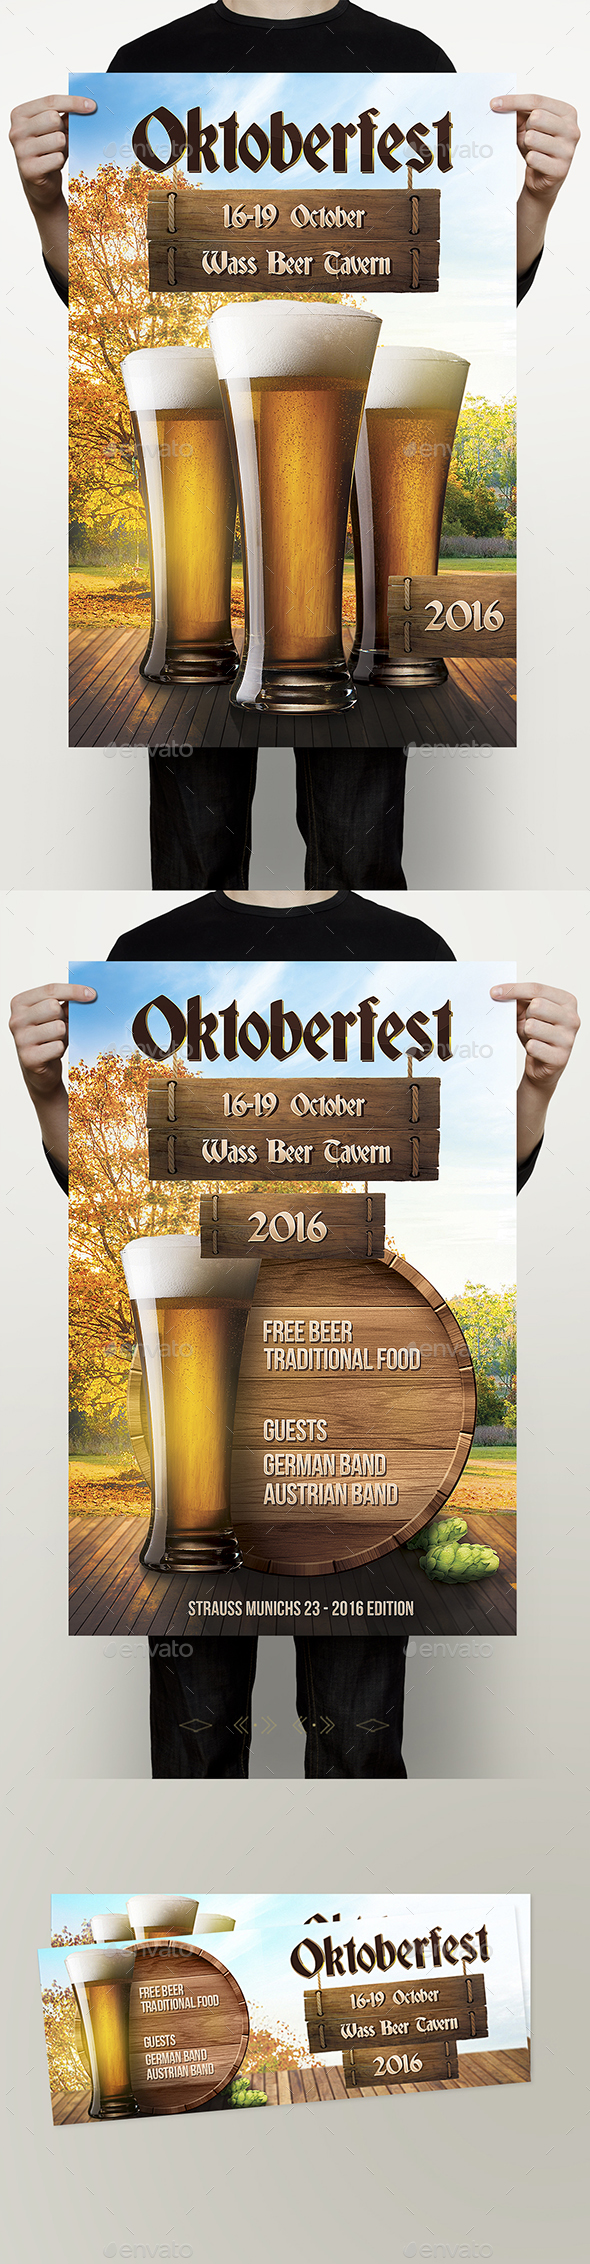 Oktoberfest - Holidays Events